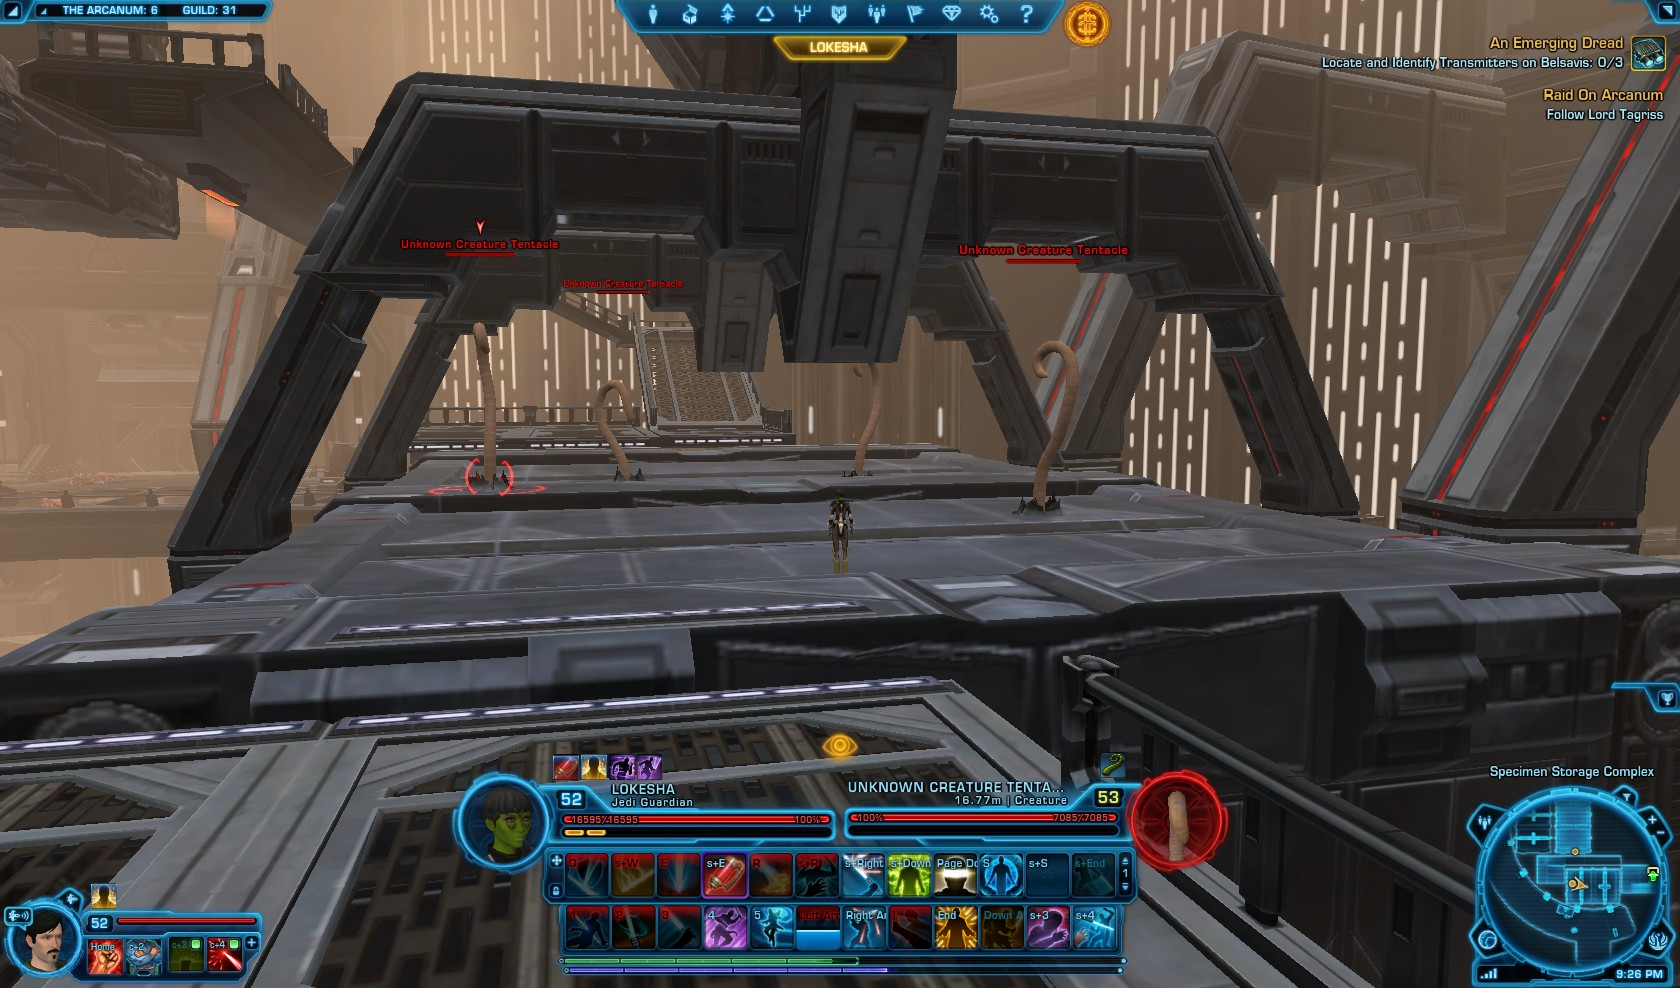 Swtor Raid on Arcanum Seeker Droid Mission